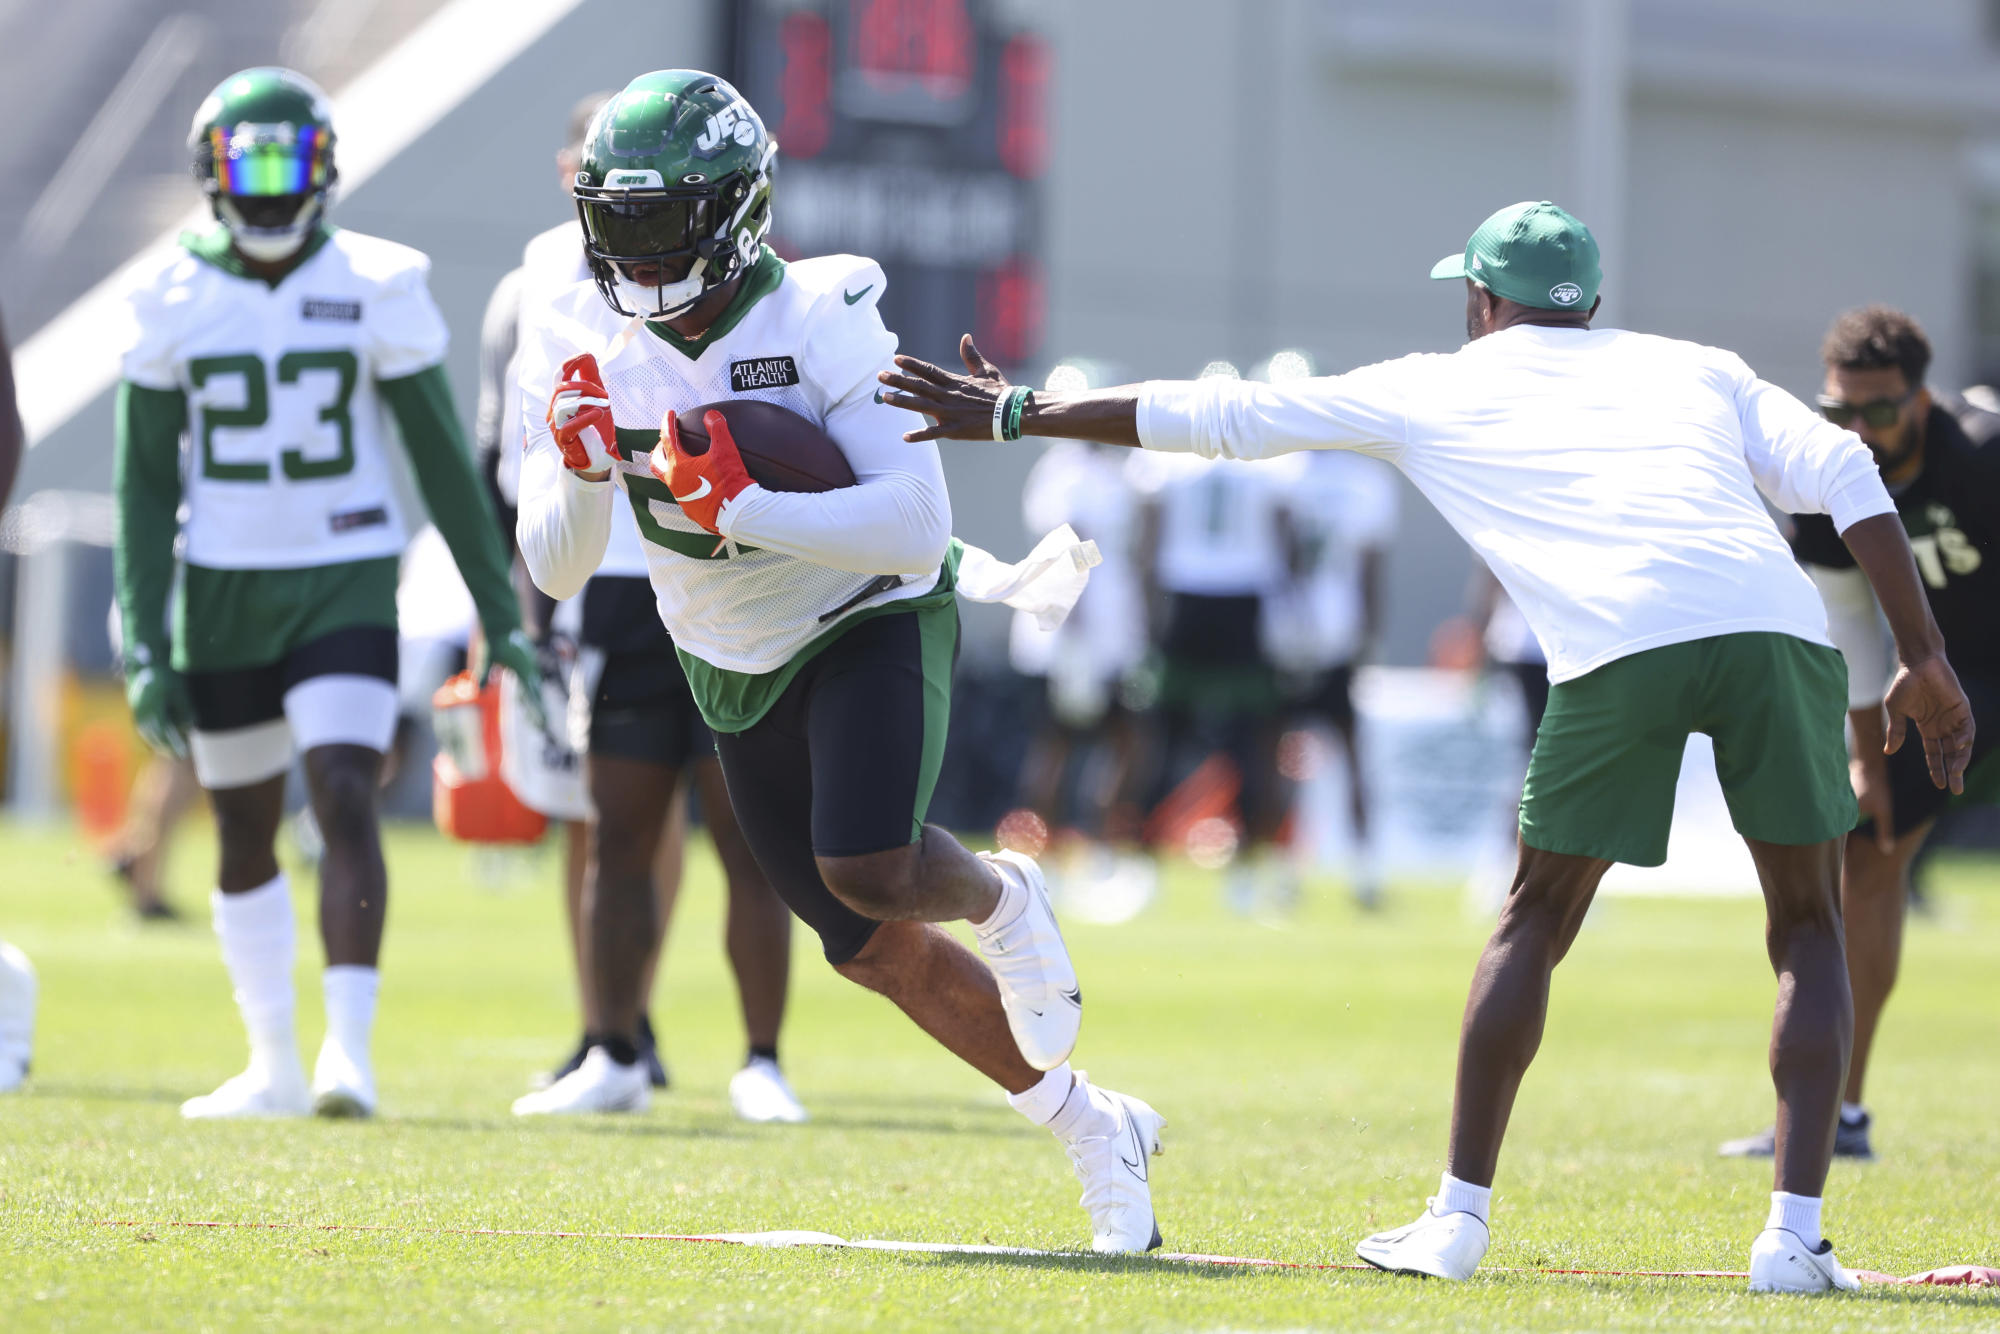 Joint practices help NFL teams tackle tedium of camp 6